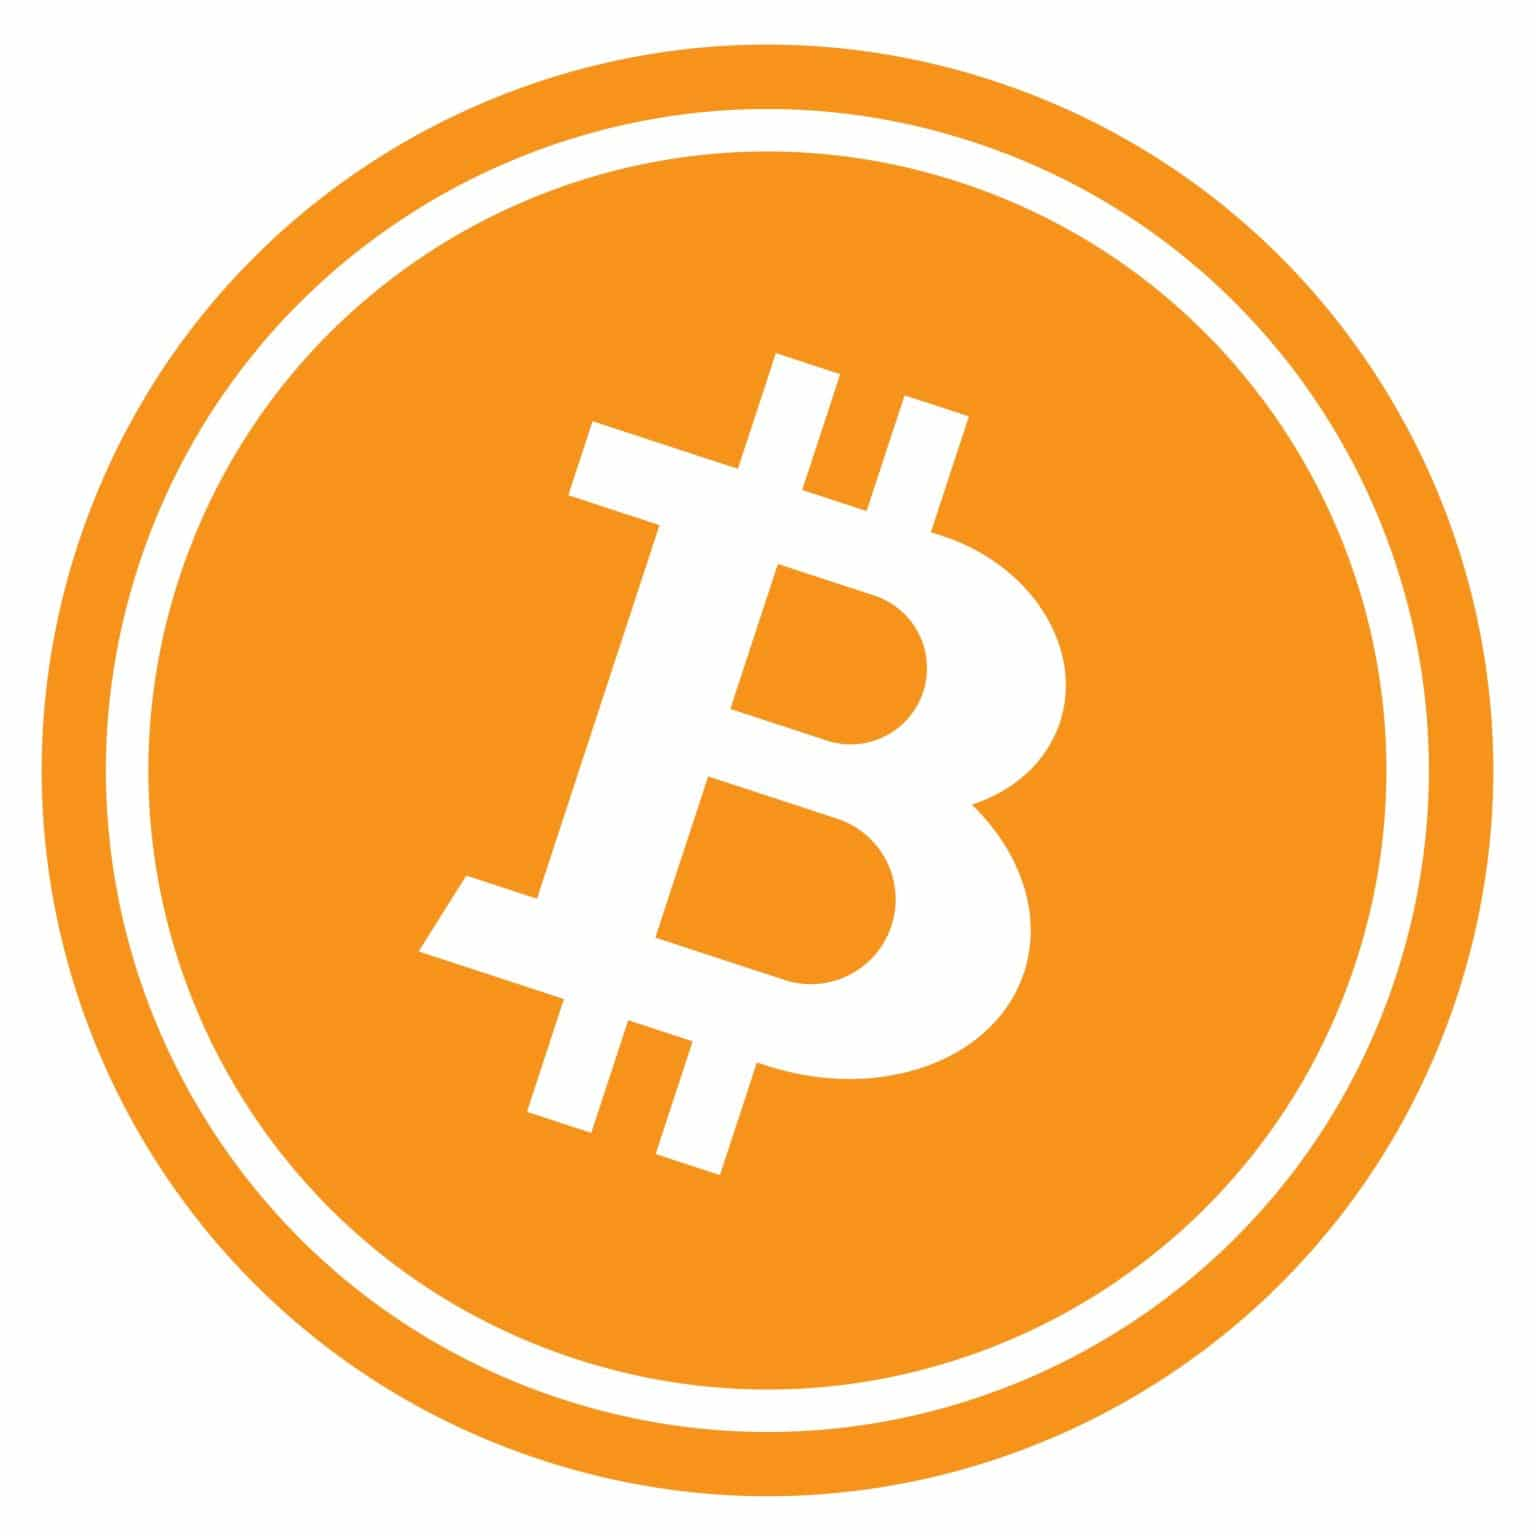 Bitcoin Logo - Orange Circle with Bitcoin Logo Inside